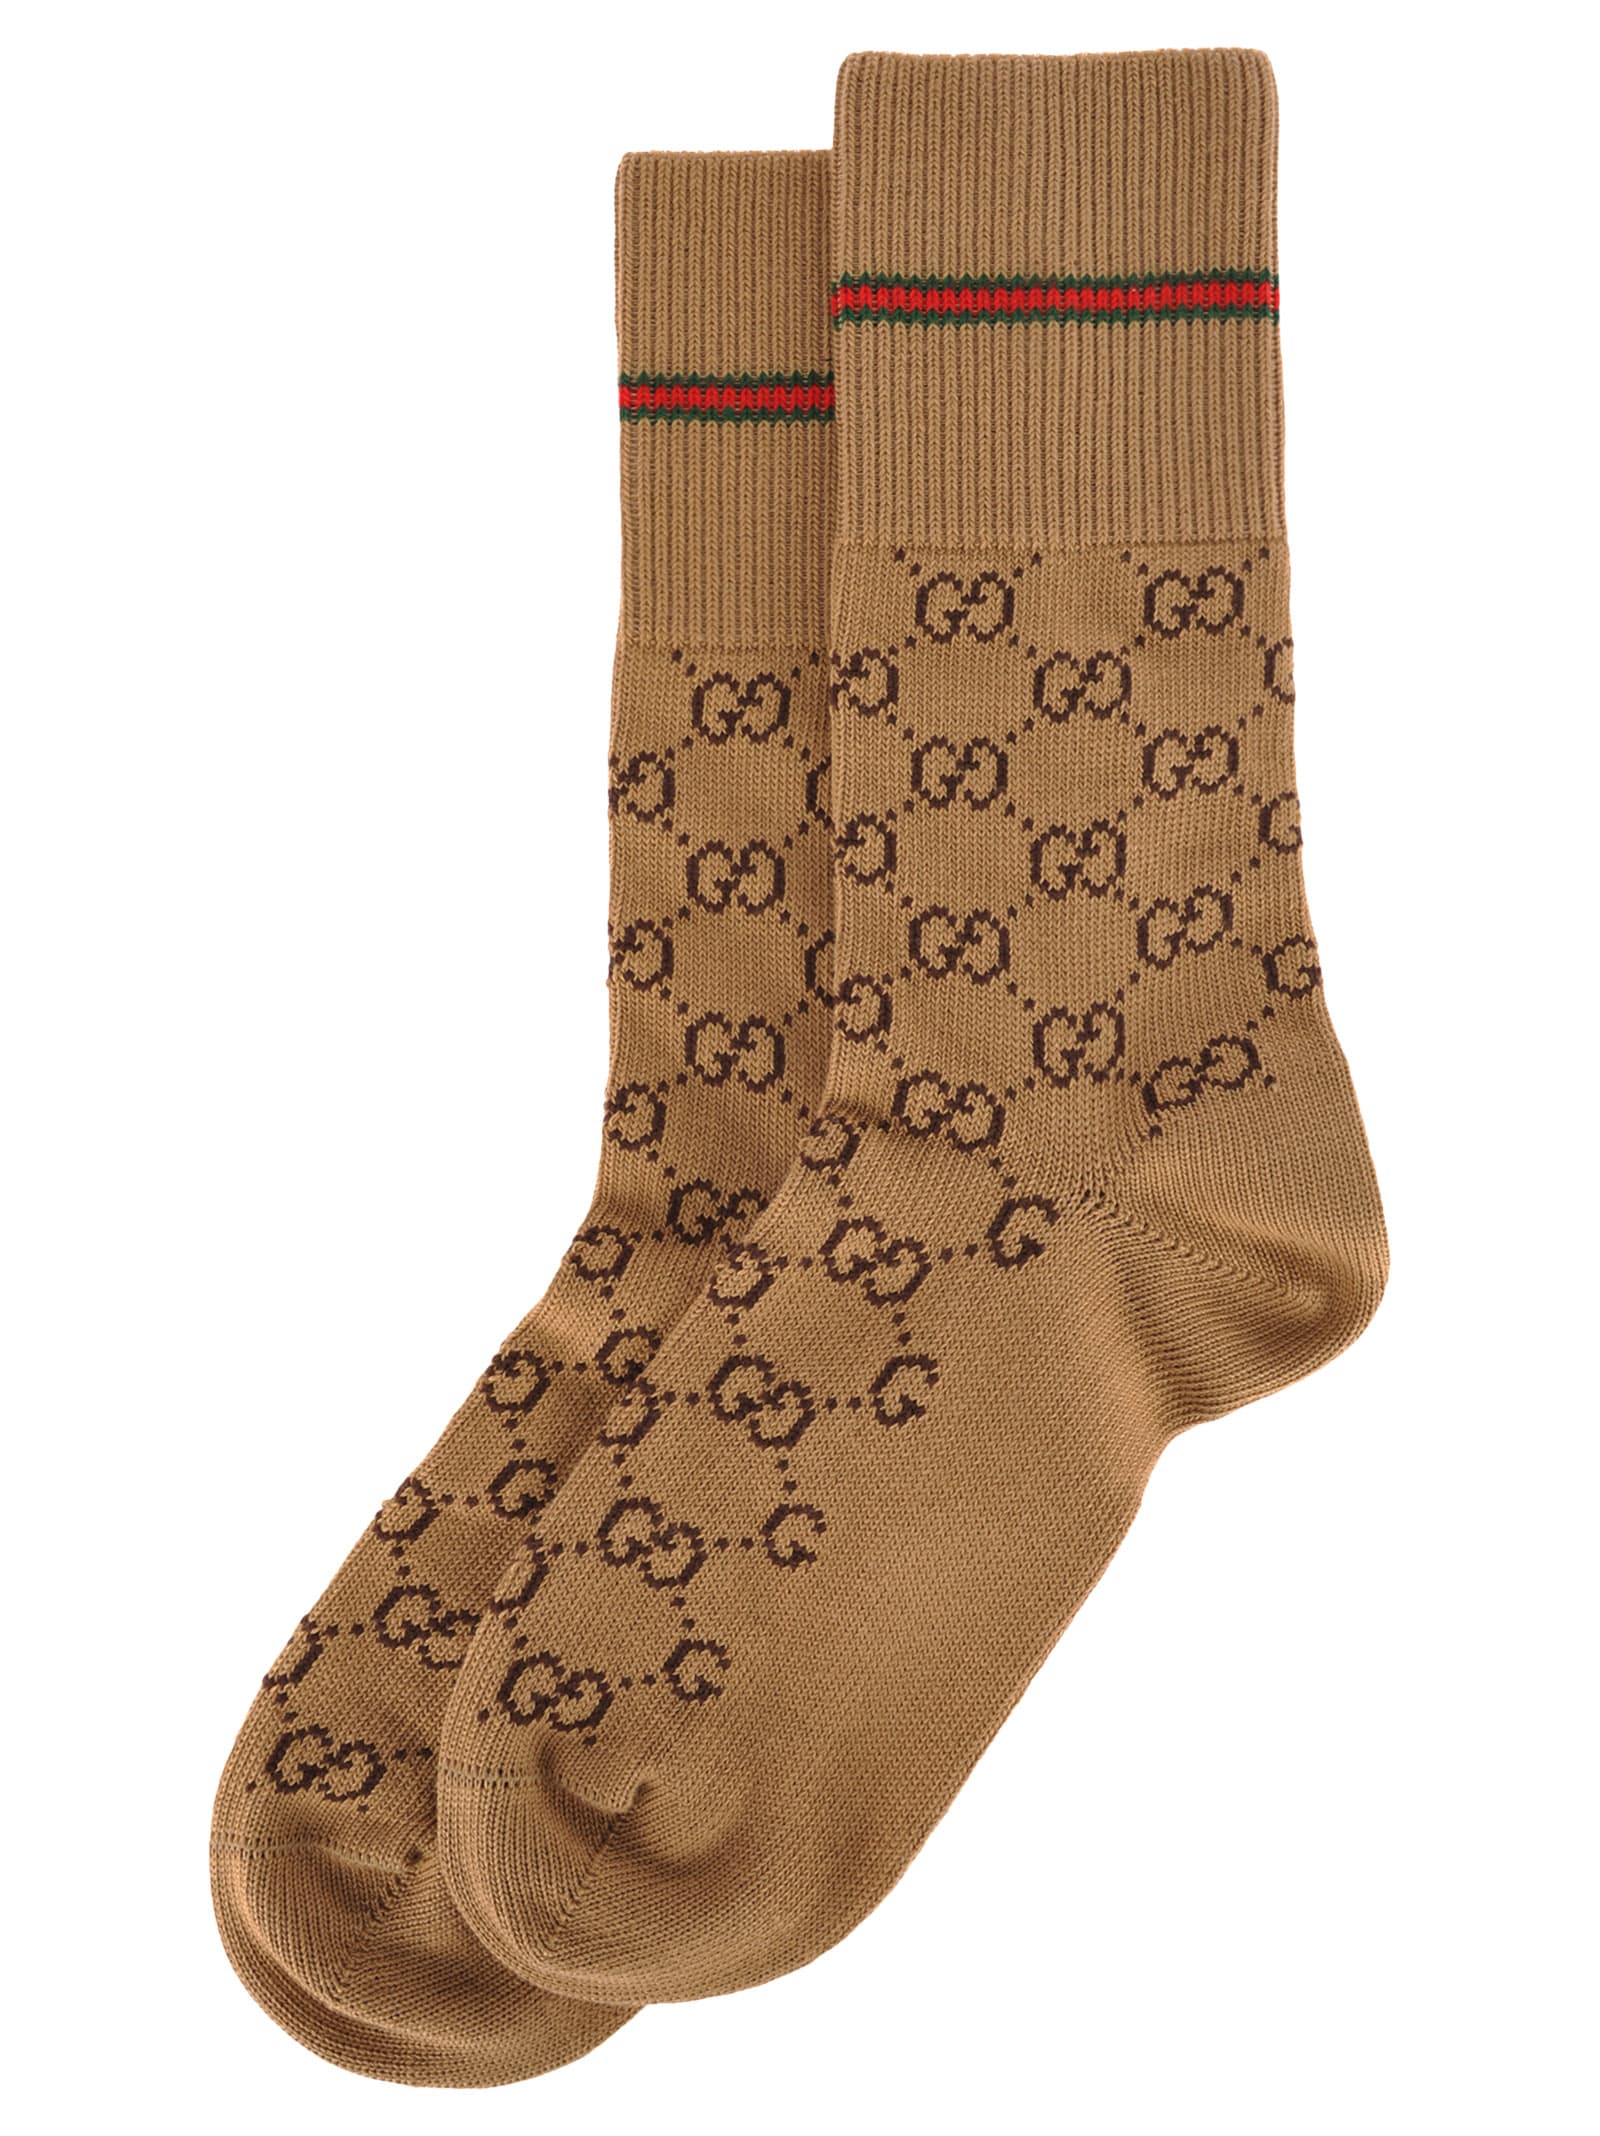 a2a3a1843f Gucci Gg Cotton Socks With Web